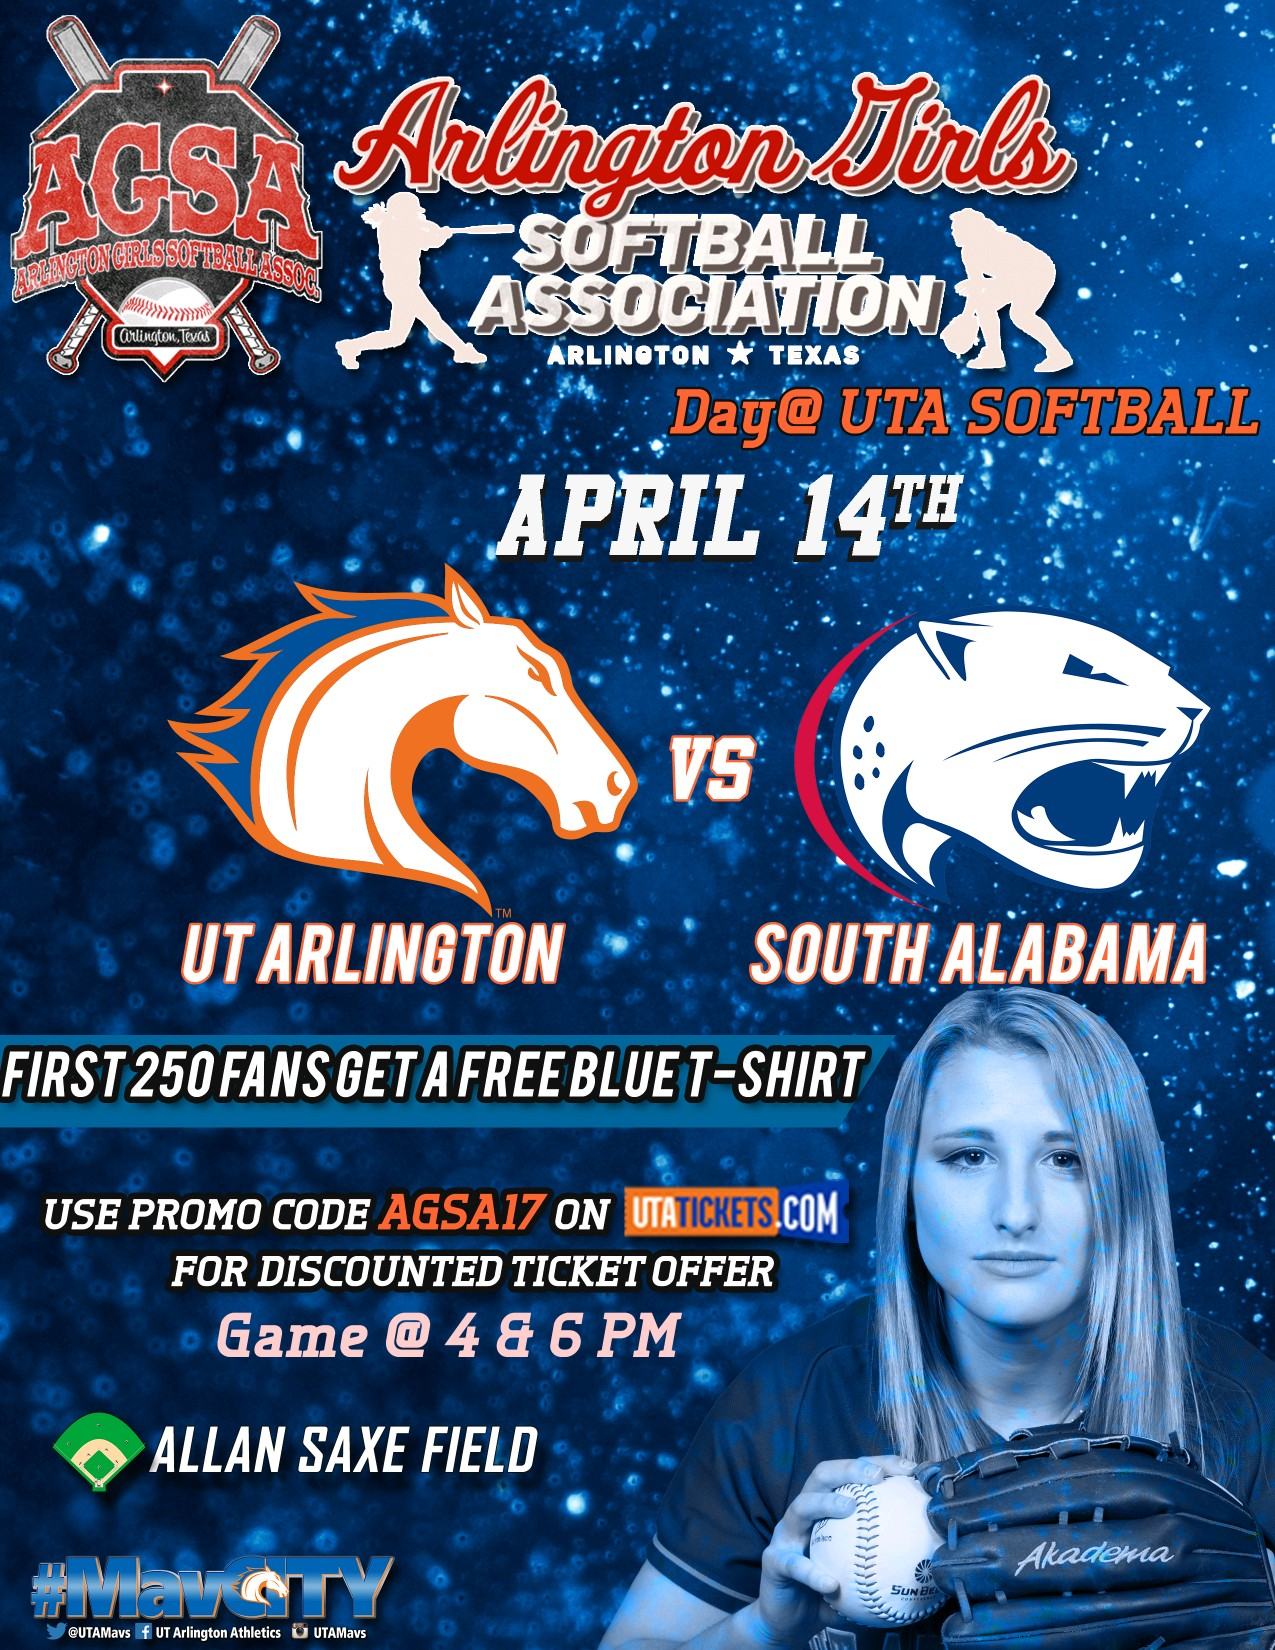 Don't miss AGSA Day at UTA Softball April 14th at Allan Saxe Field - Discount Tickets Available